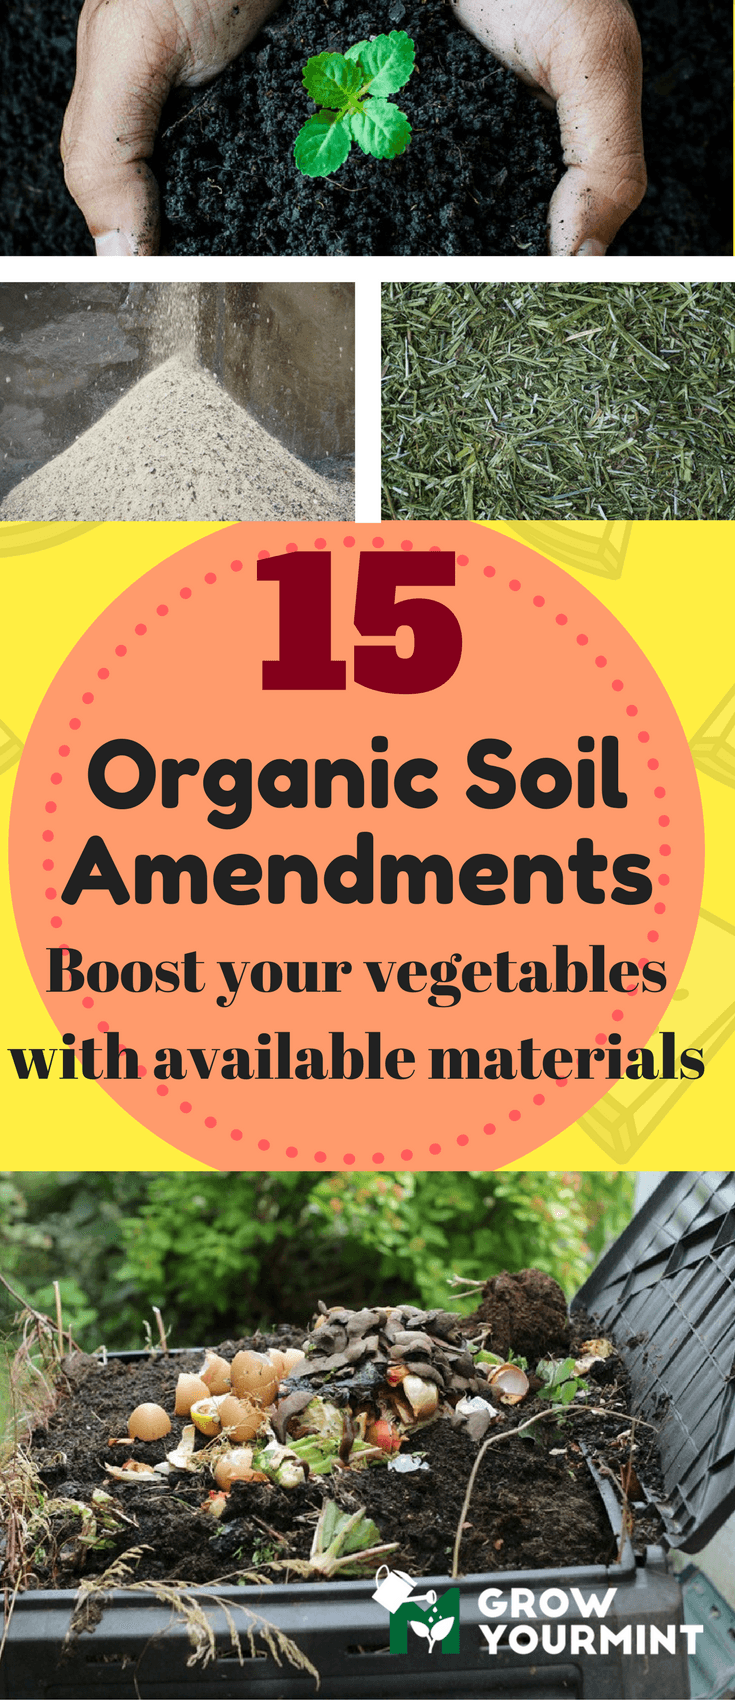 15 Organic Soil Amendments For Organic Gardening You Must Use To Boost Your  Vegetables